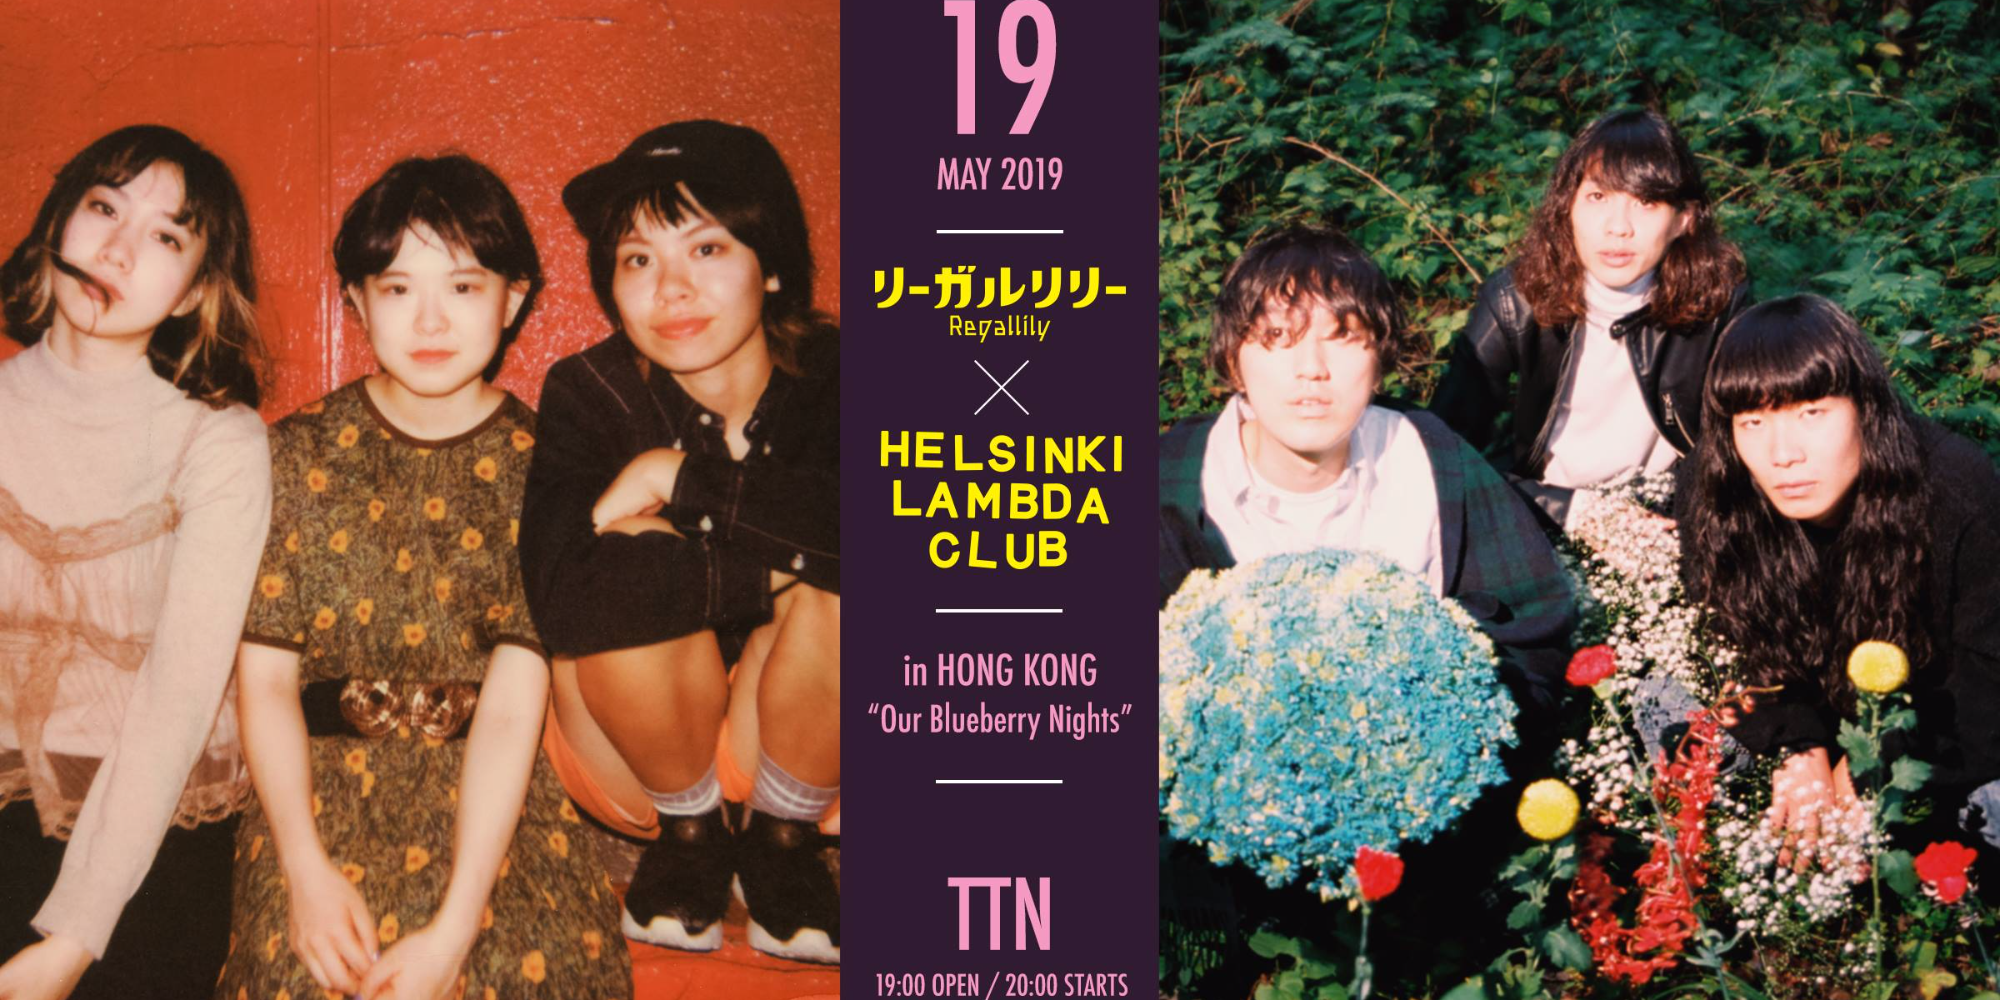 Regallily × Helsinki Lambda Club in Hong Kong「Our Blueberry Nights」